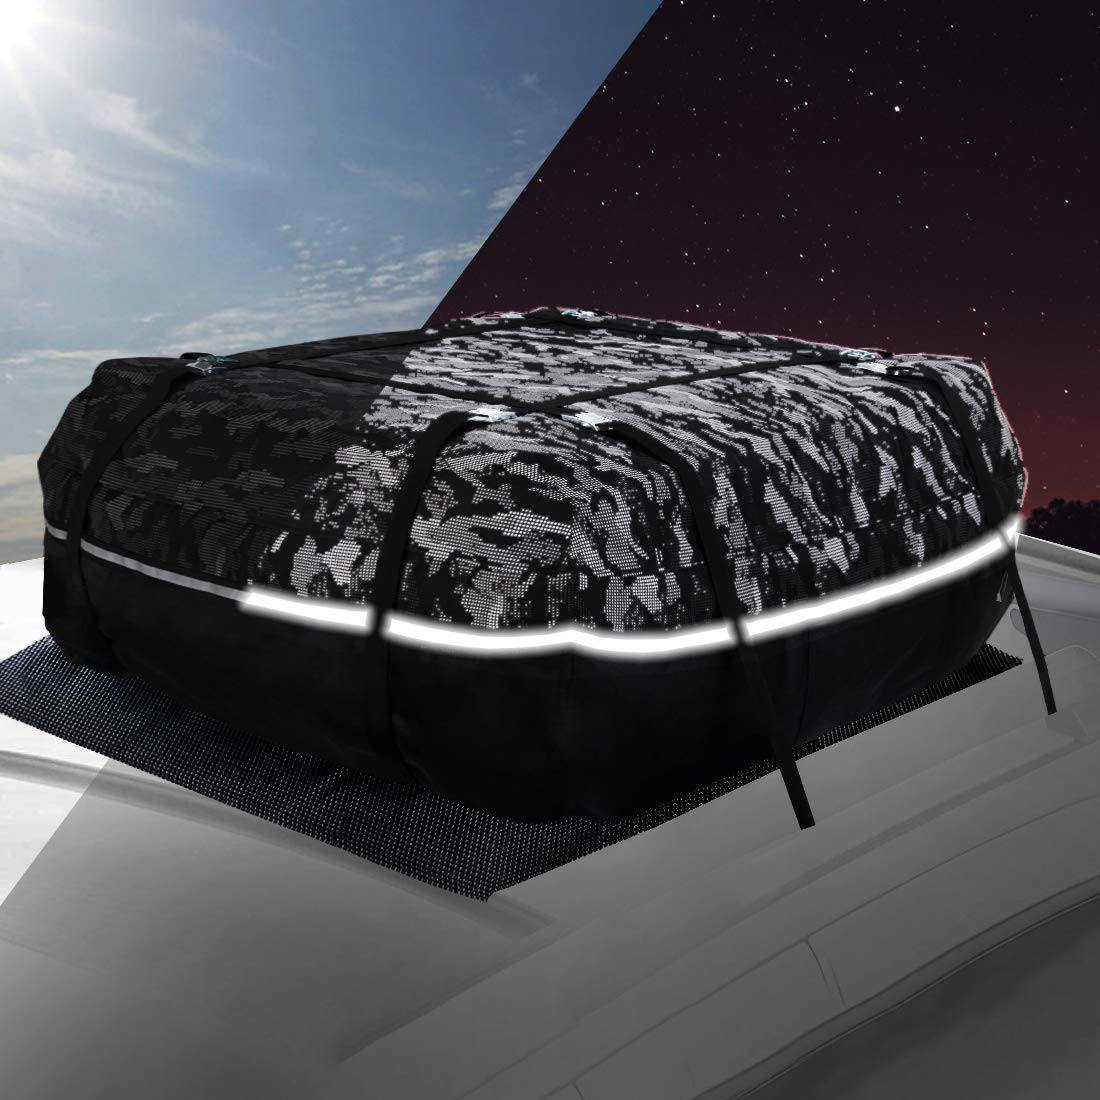 YOULERBU Roof Bag & Rooftop Cargo Carrier Bag with Reflective Fabric Waterproof Cargo Bag with Metal Buckles Fit for Cars with/Without Racks 17 Cubic Feet by YOULERBU